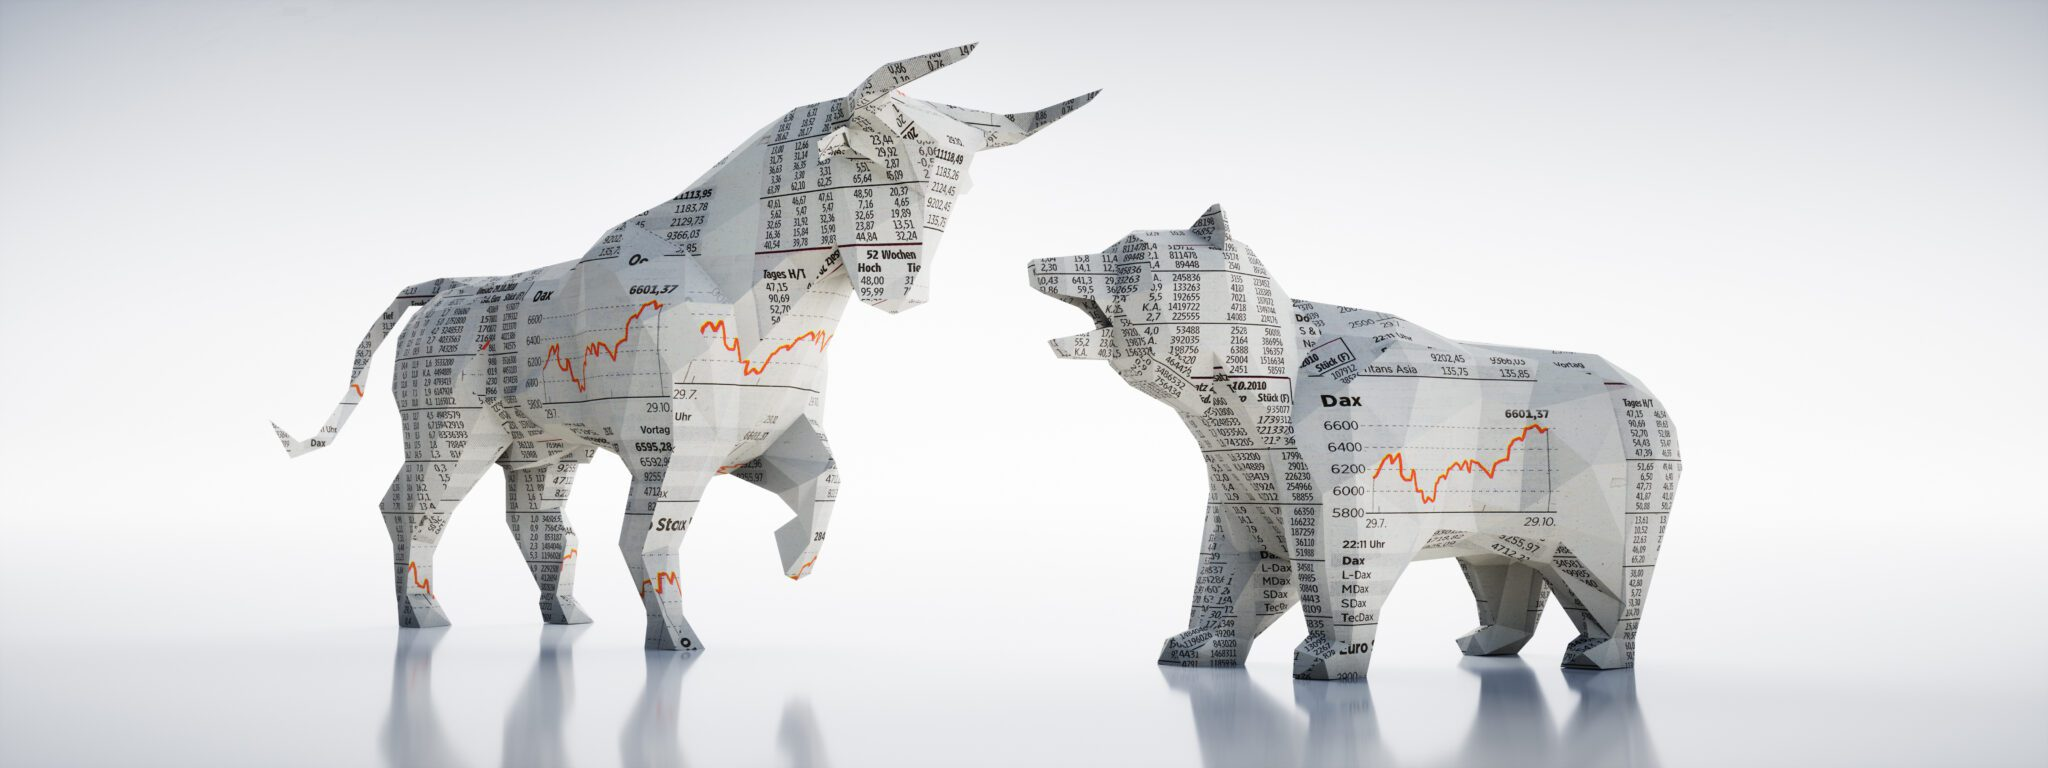 Bull and bear depicted in the best bank stocks cartoon.